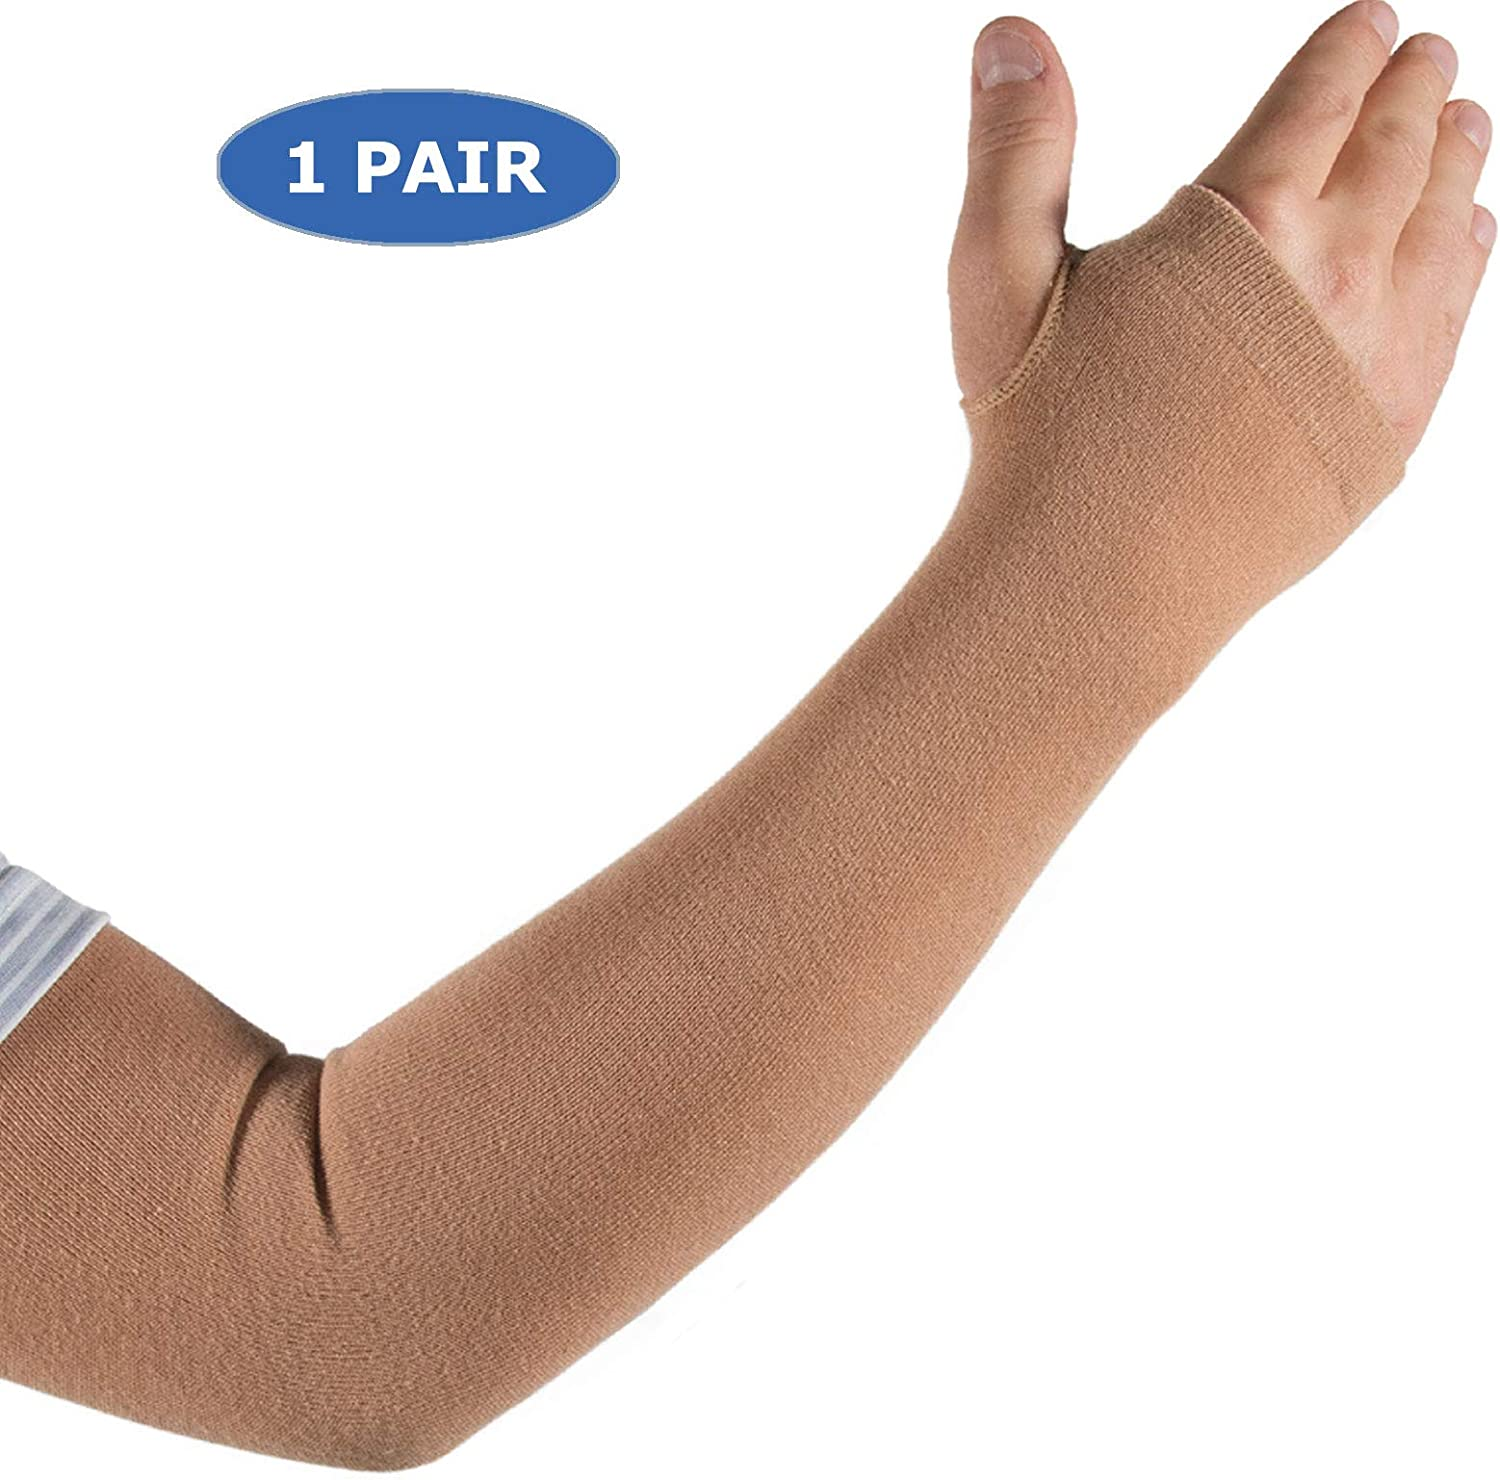 Skin Protection Arm Sleeves for Men & Women | Protect Sensitive Arm and Hand Skin Against Tears, Bruising and Sun Exposure (Available in 4 Sizes and 1, 2 & 12 Pair Packs) 71QnHnUn6kL